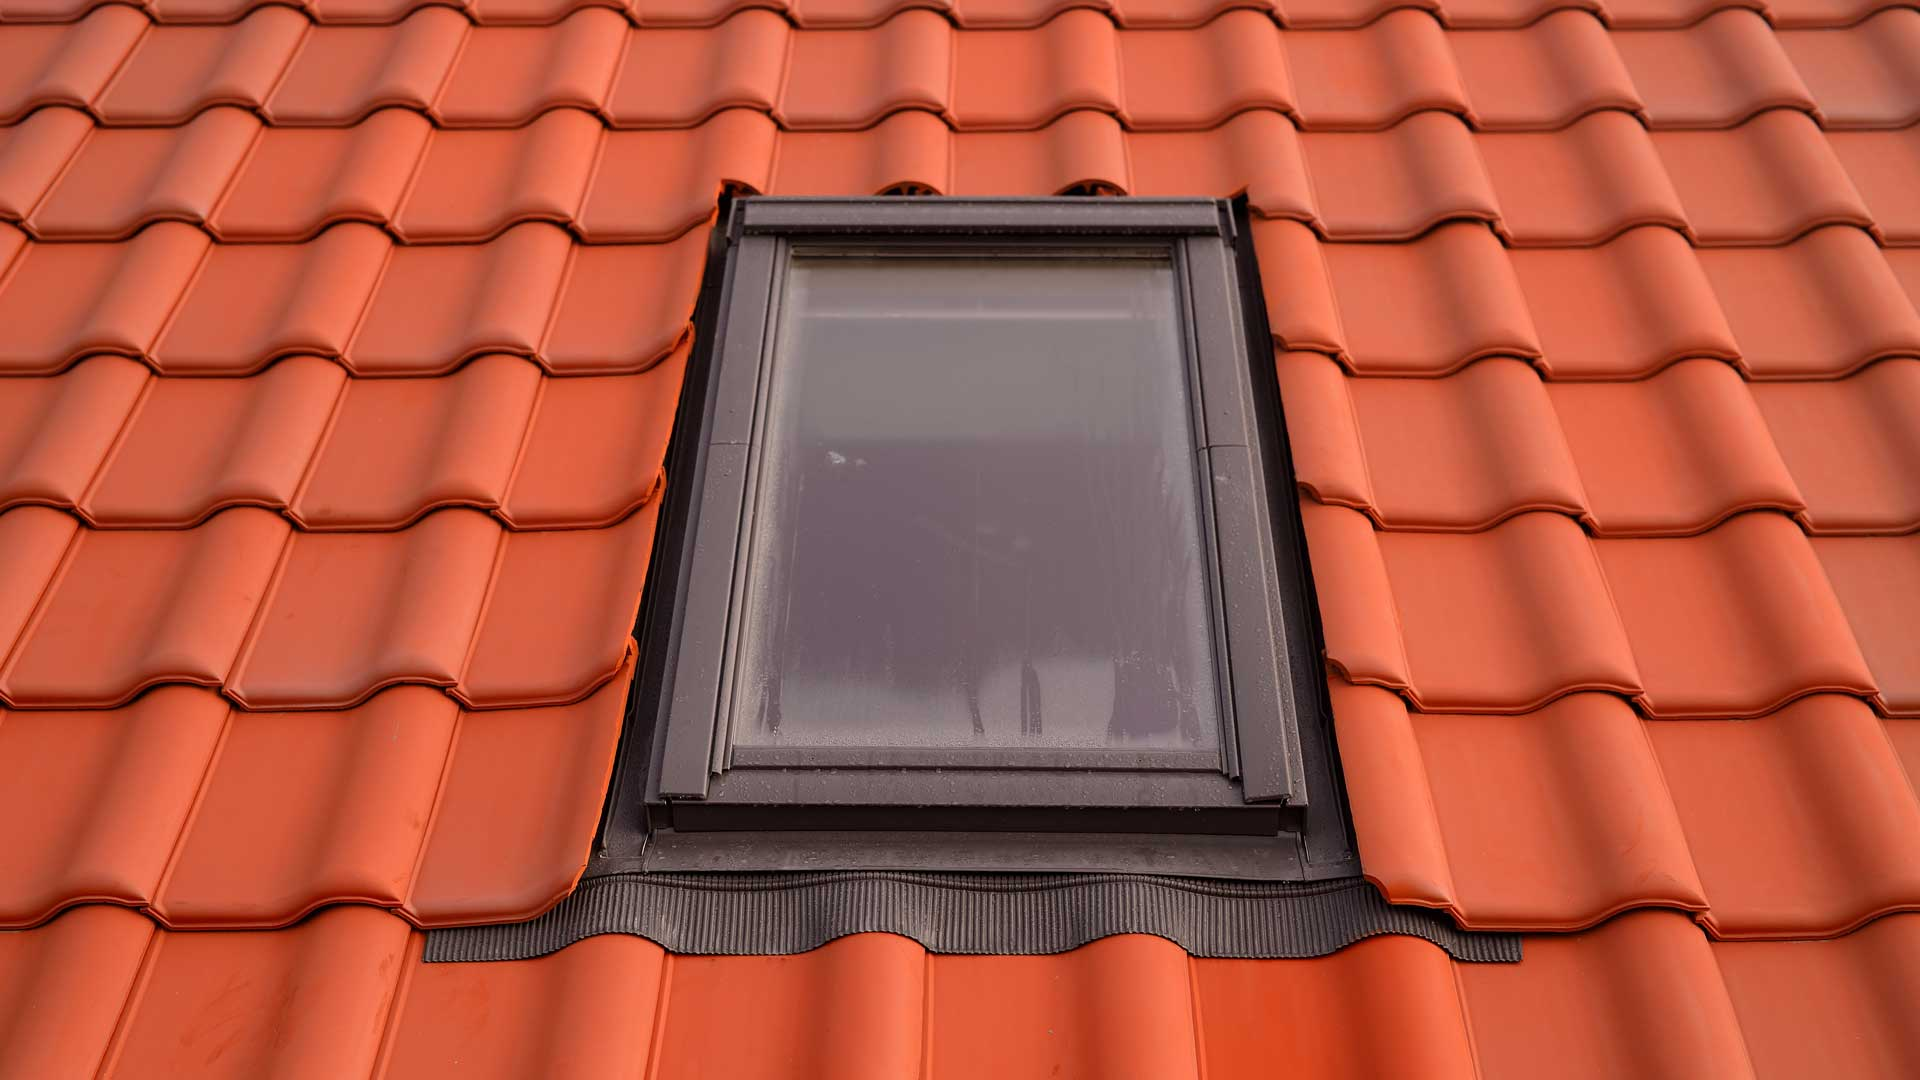 roof-tiles-window-2